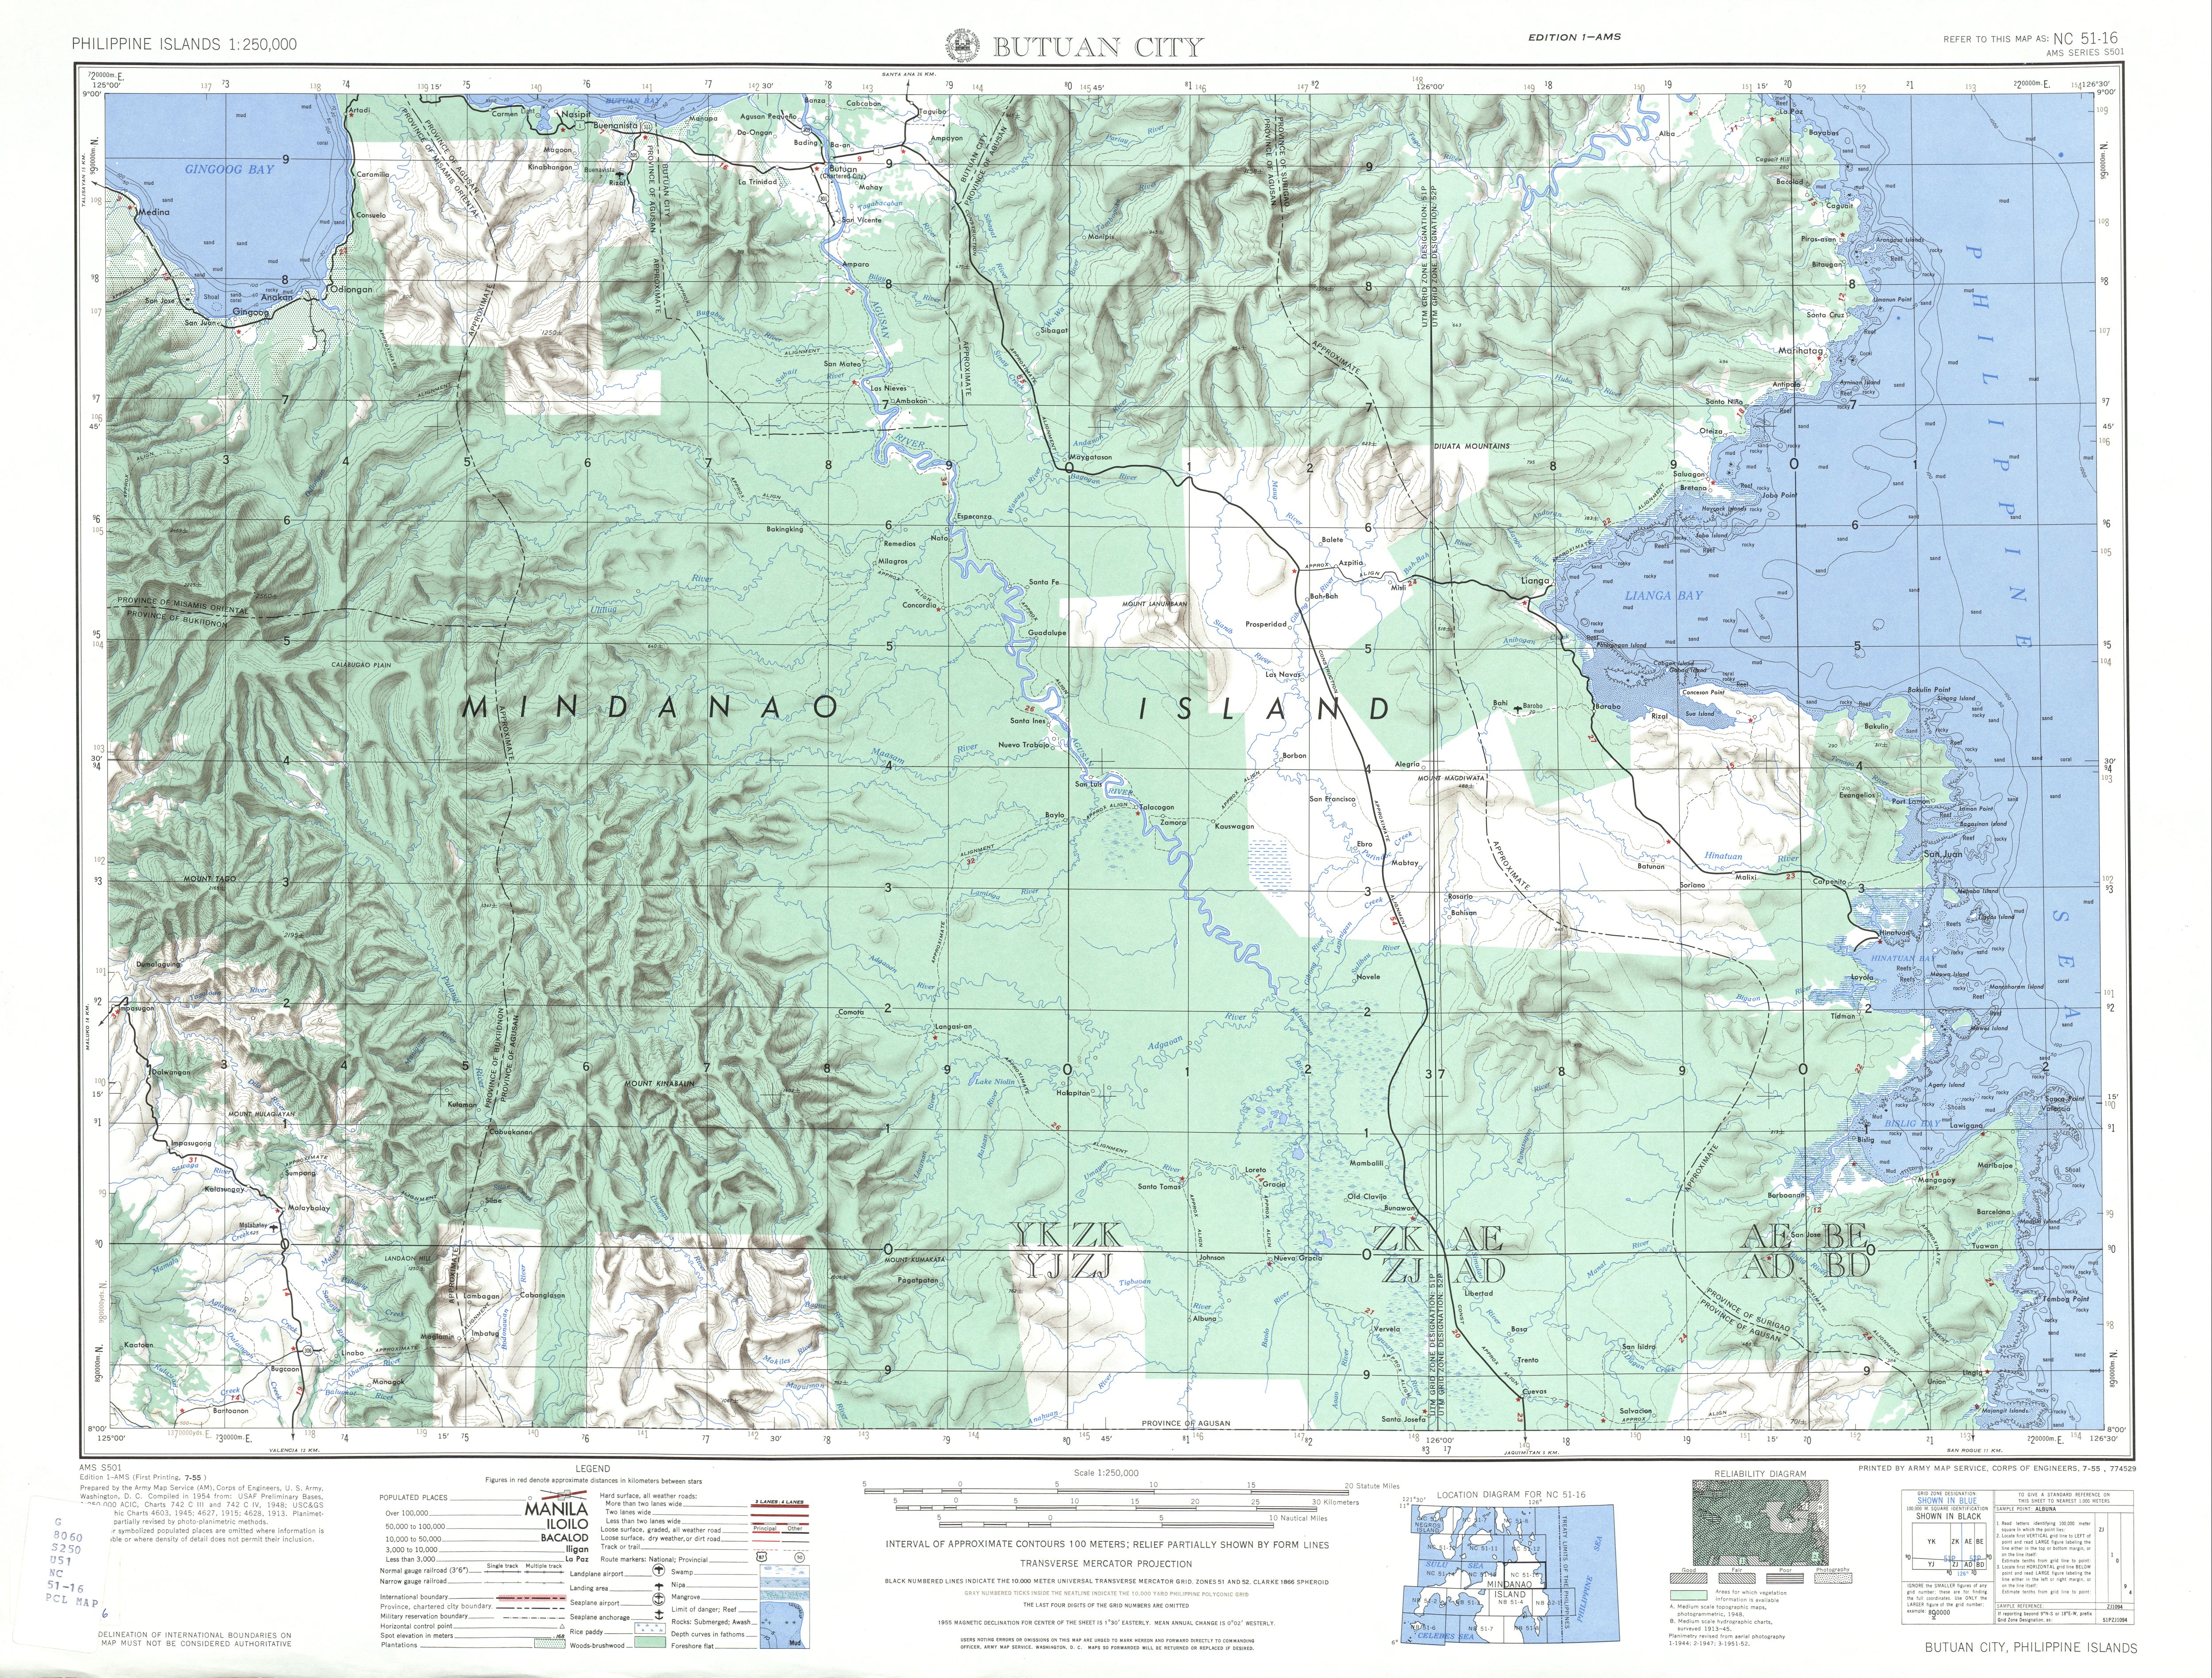 Philippines ams topographic maps perry castaeda map collection nc 51 16 butuan city gumiabroncs Image collections